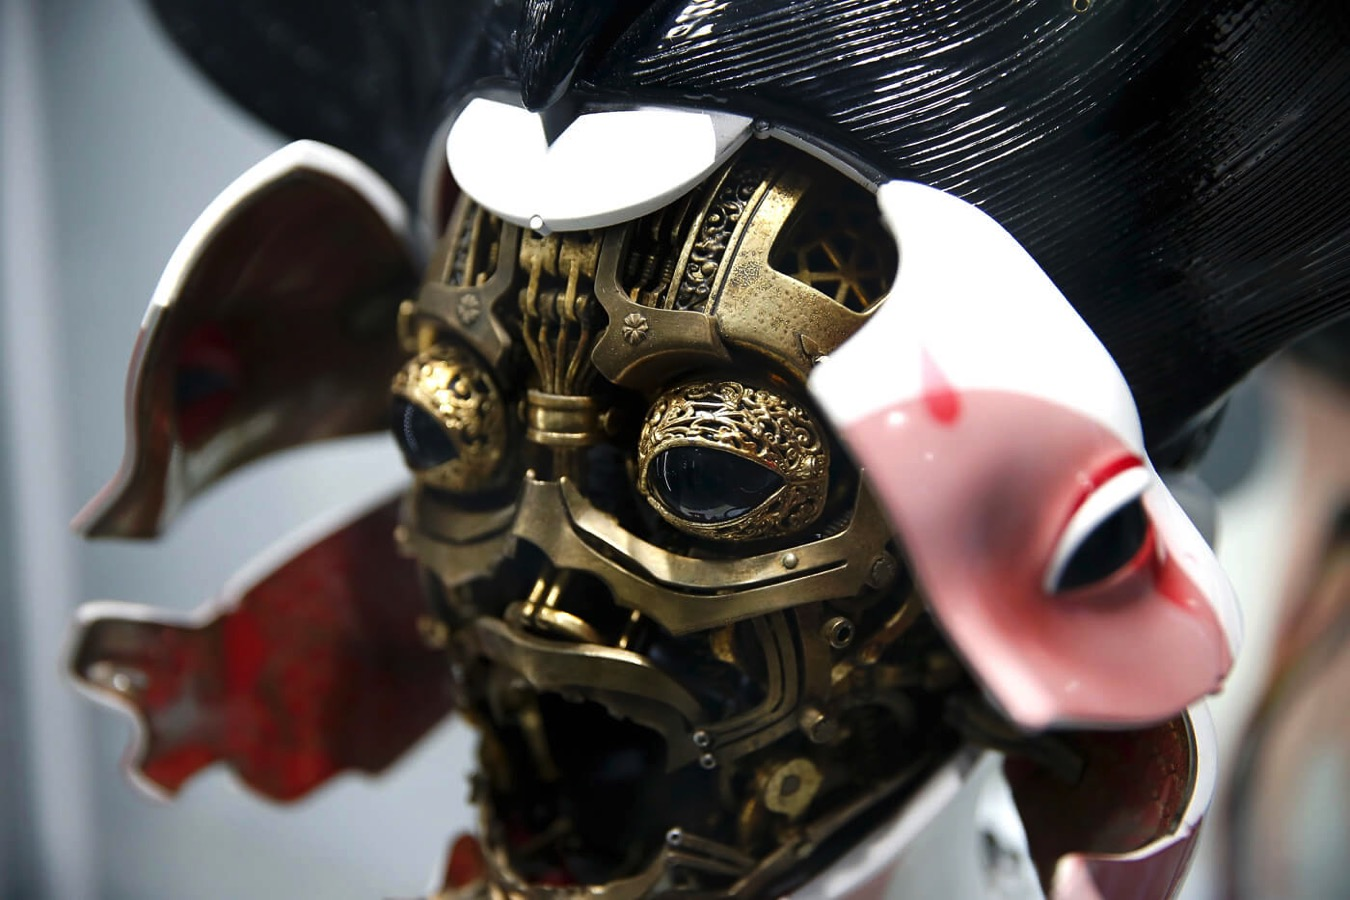 Ghost in the shell geisha mask costume 4 copy